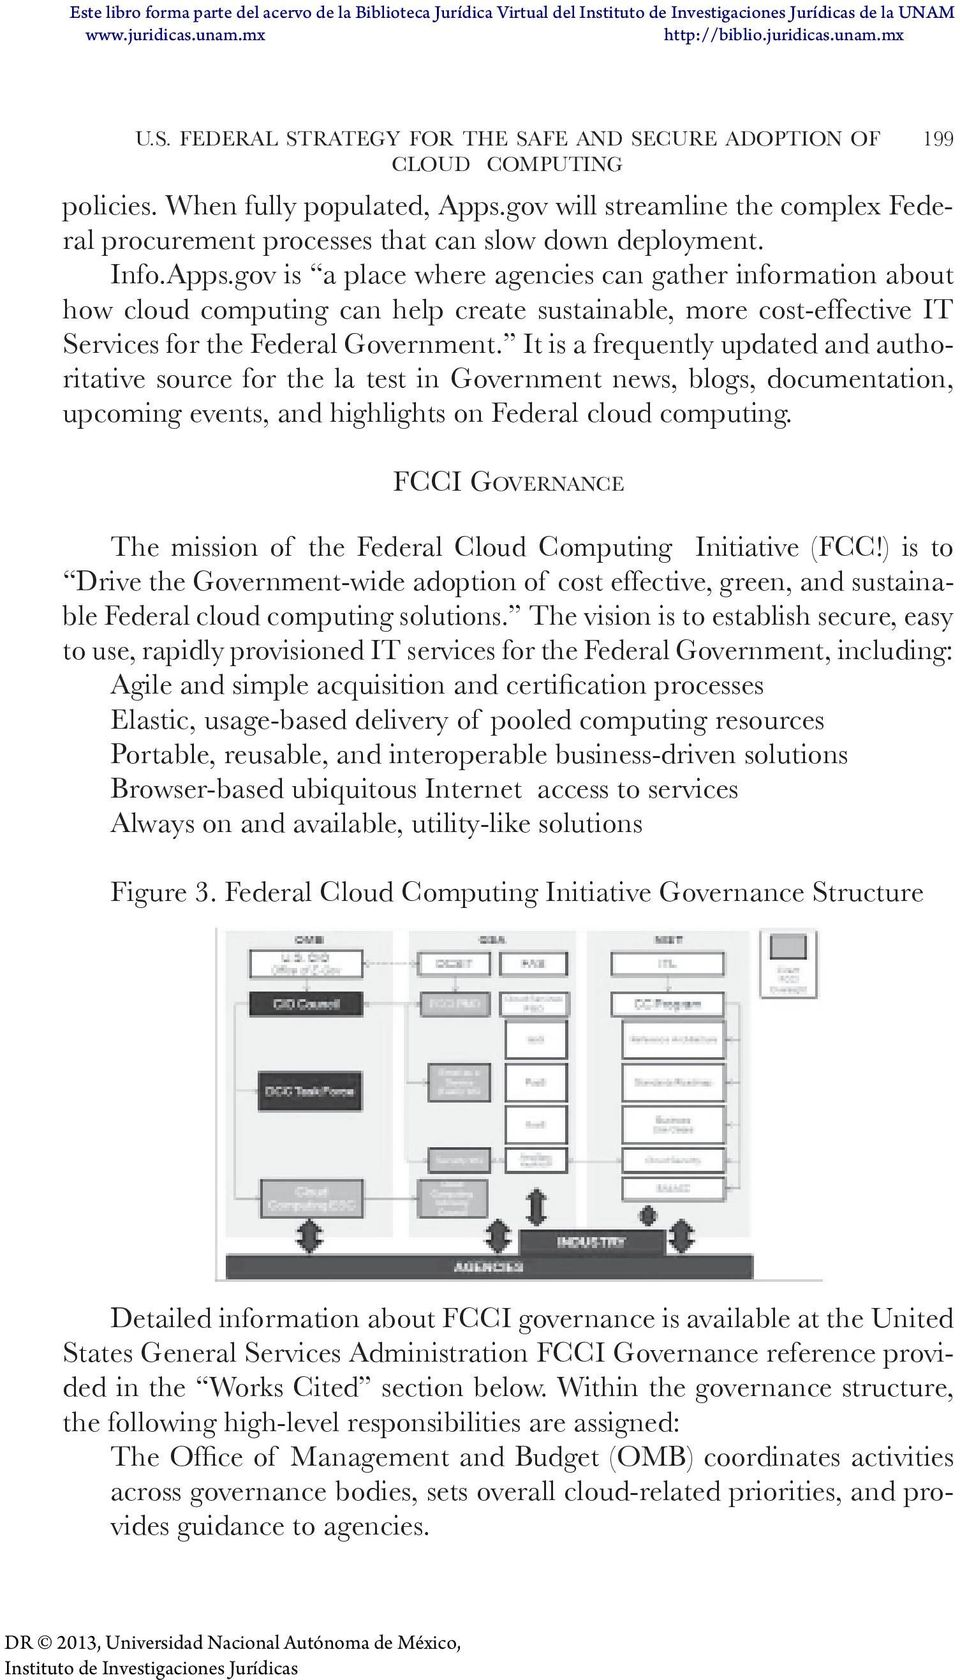 gov is a place where agencies can gather information about how cloud computing can help create sustainable, more cost-effective IT Services for the Federal Government.